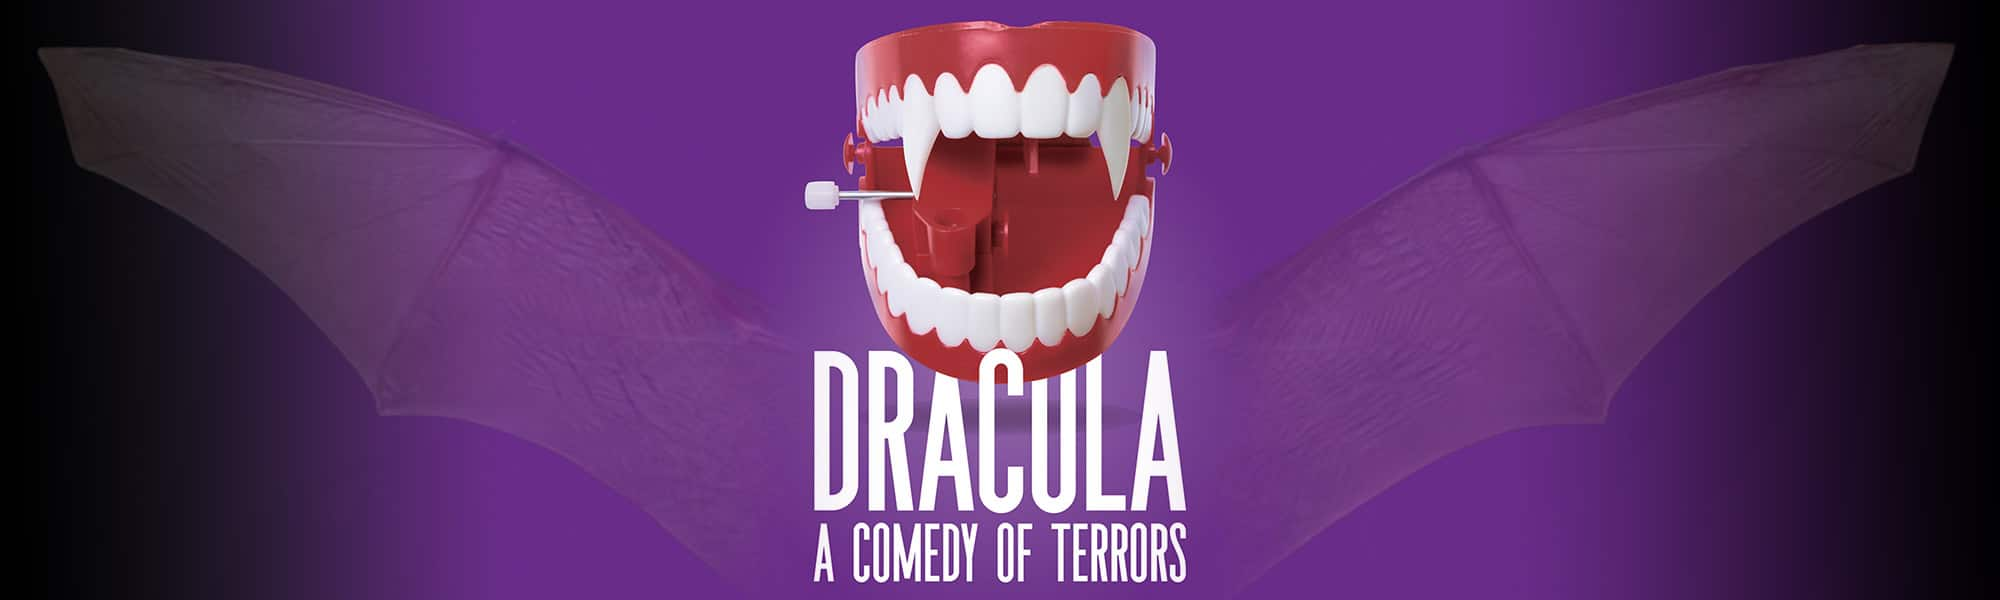 Dracula, a Comedy of Terrors - banner